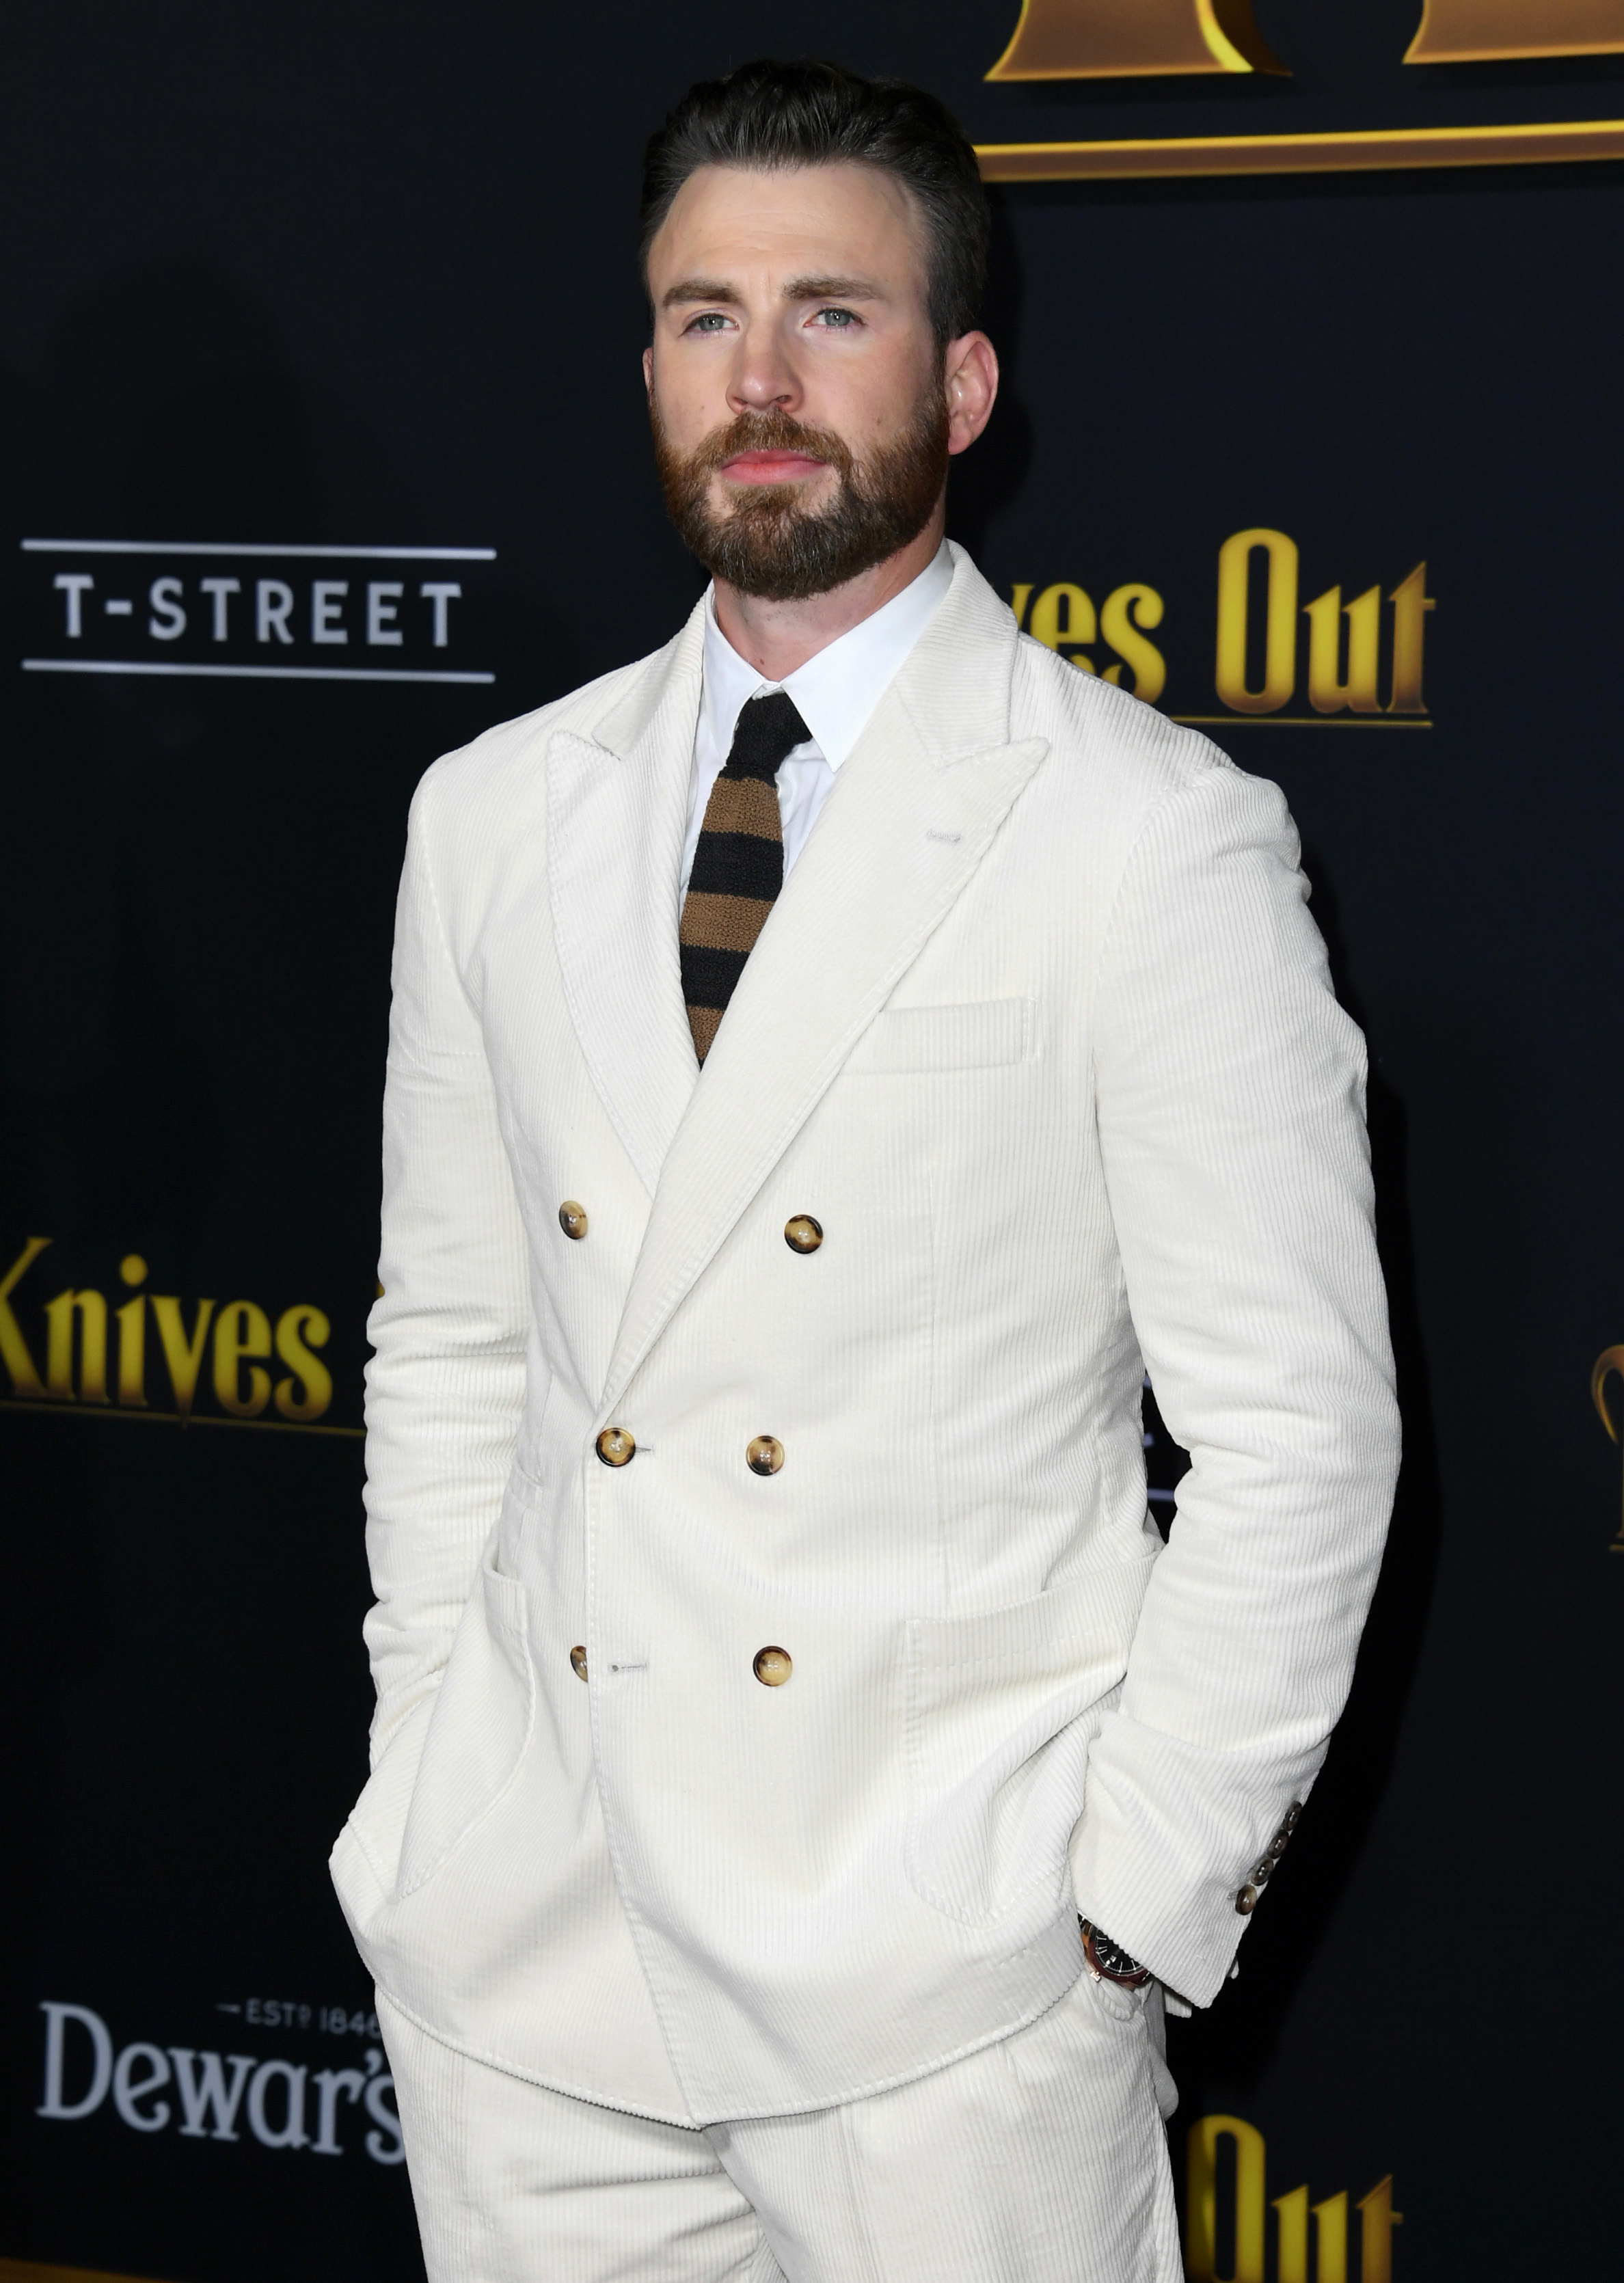 Chris Evans appreciates fan support after 'embarrassing' NSFW photo